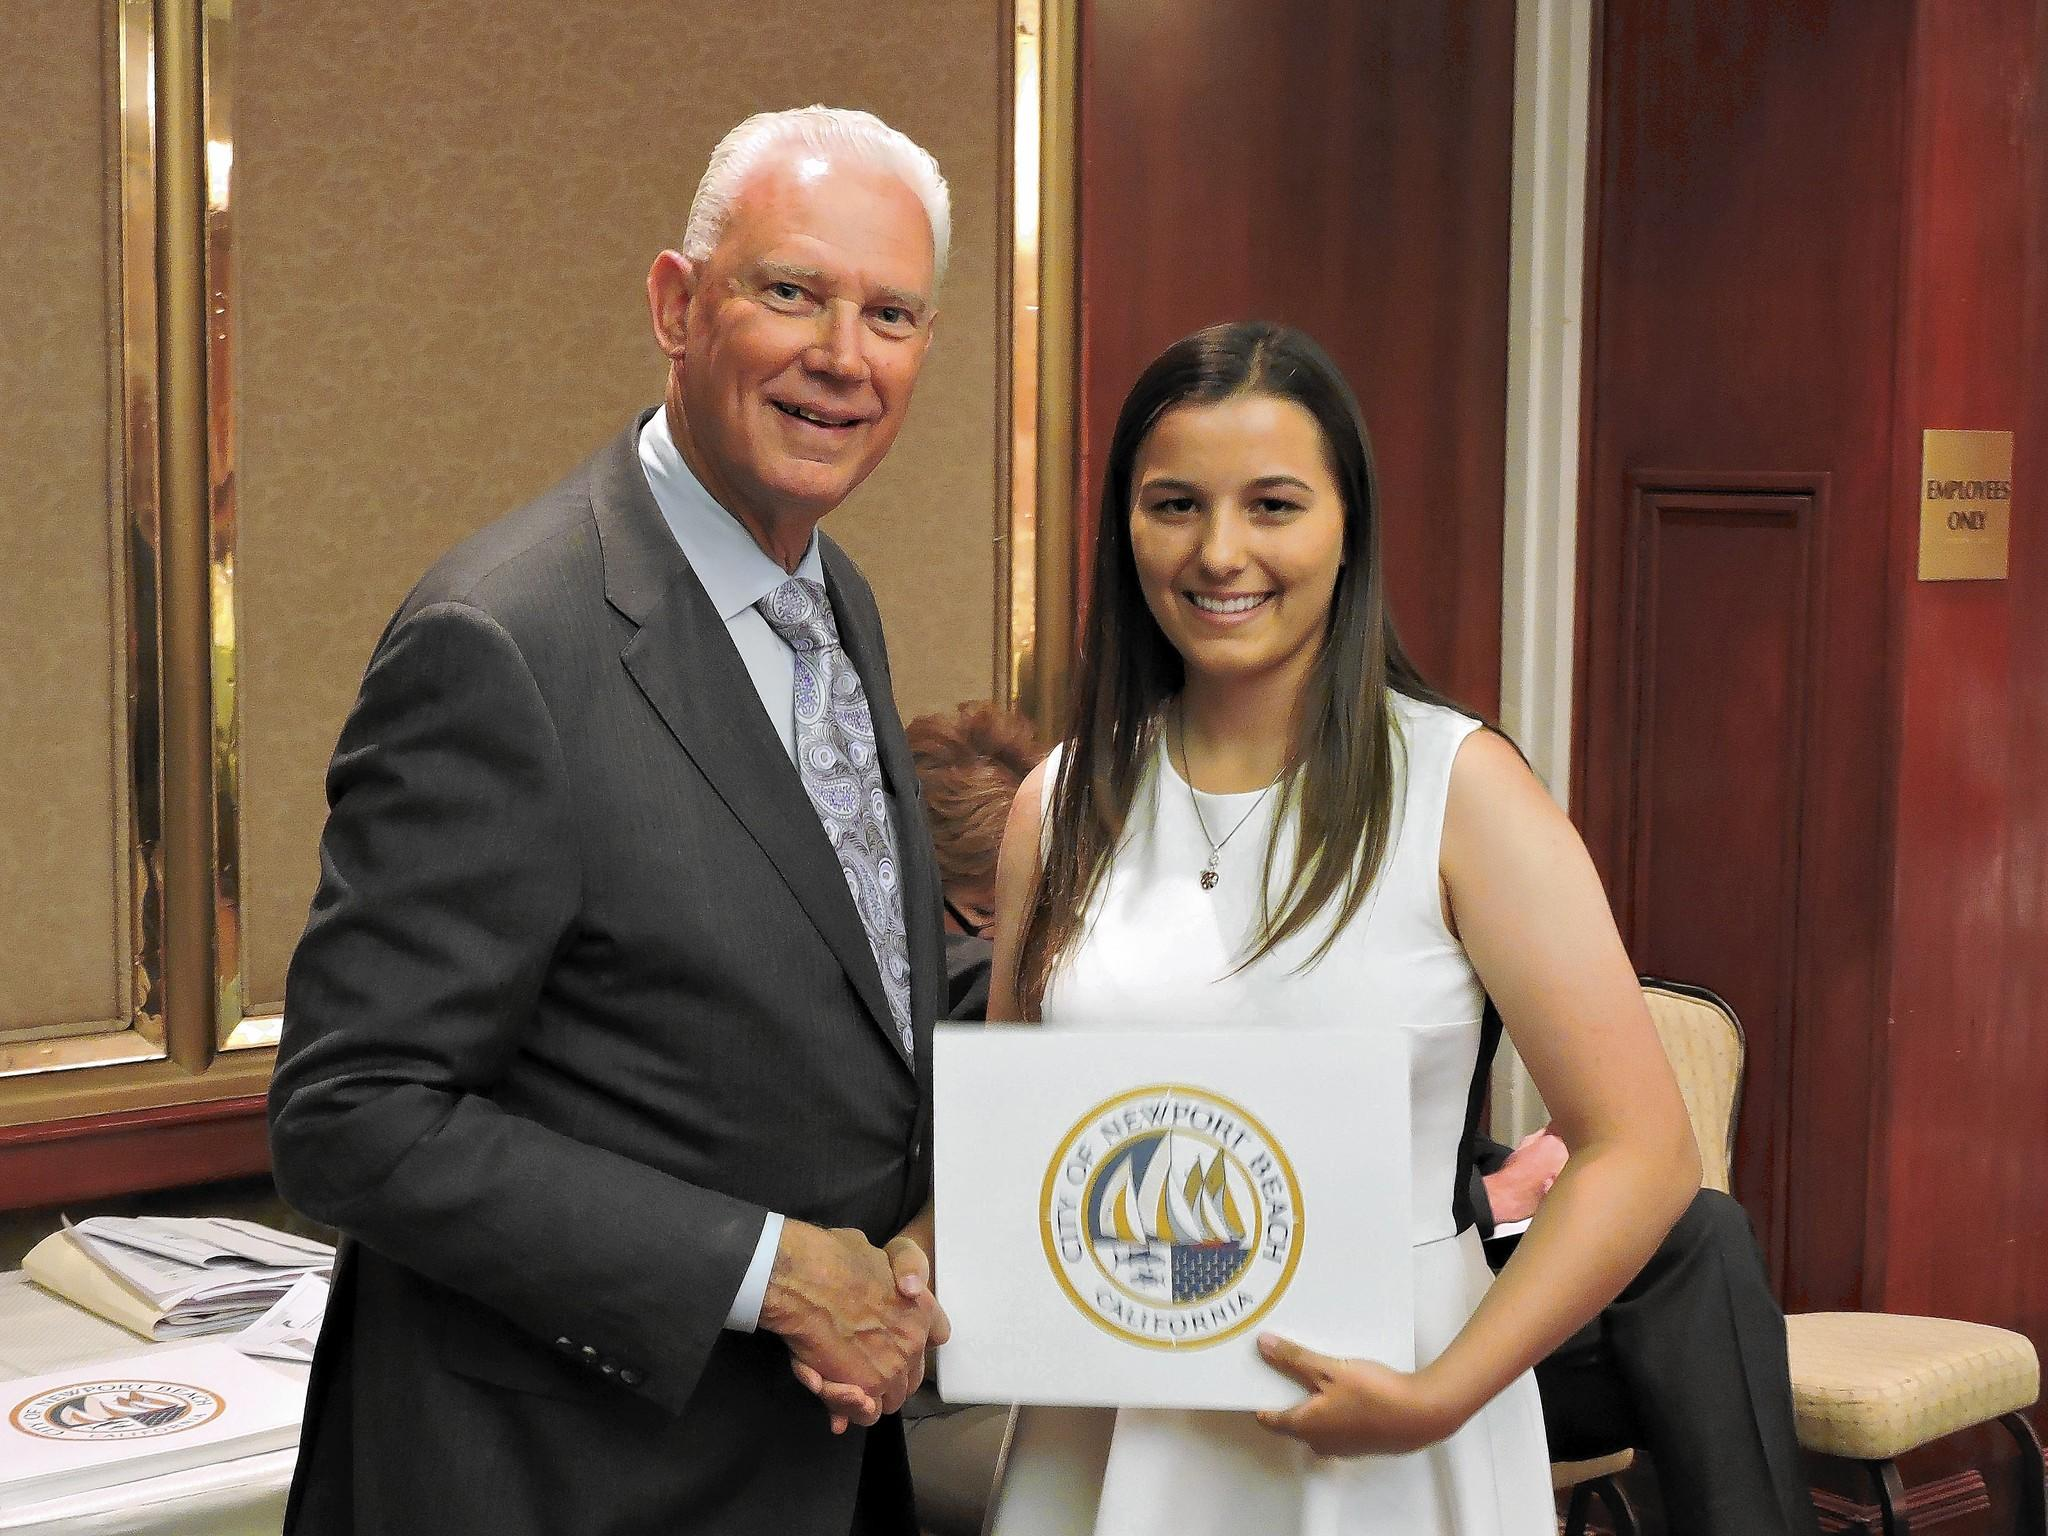 Newport Beach Mayor Rush Hill poses with Newport Harbor High School senior Natalie Cernius during the 53rd annual scholarship awards dinner hosted by the Newport Beach Chamber of Commerce and The Commodores Club.